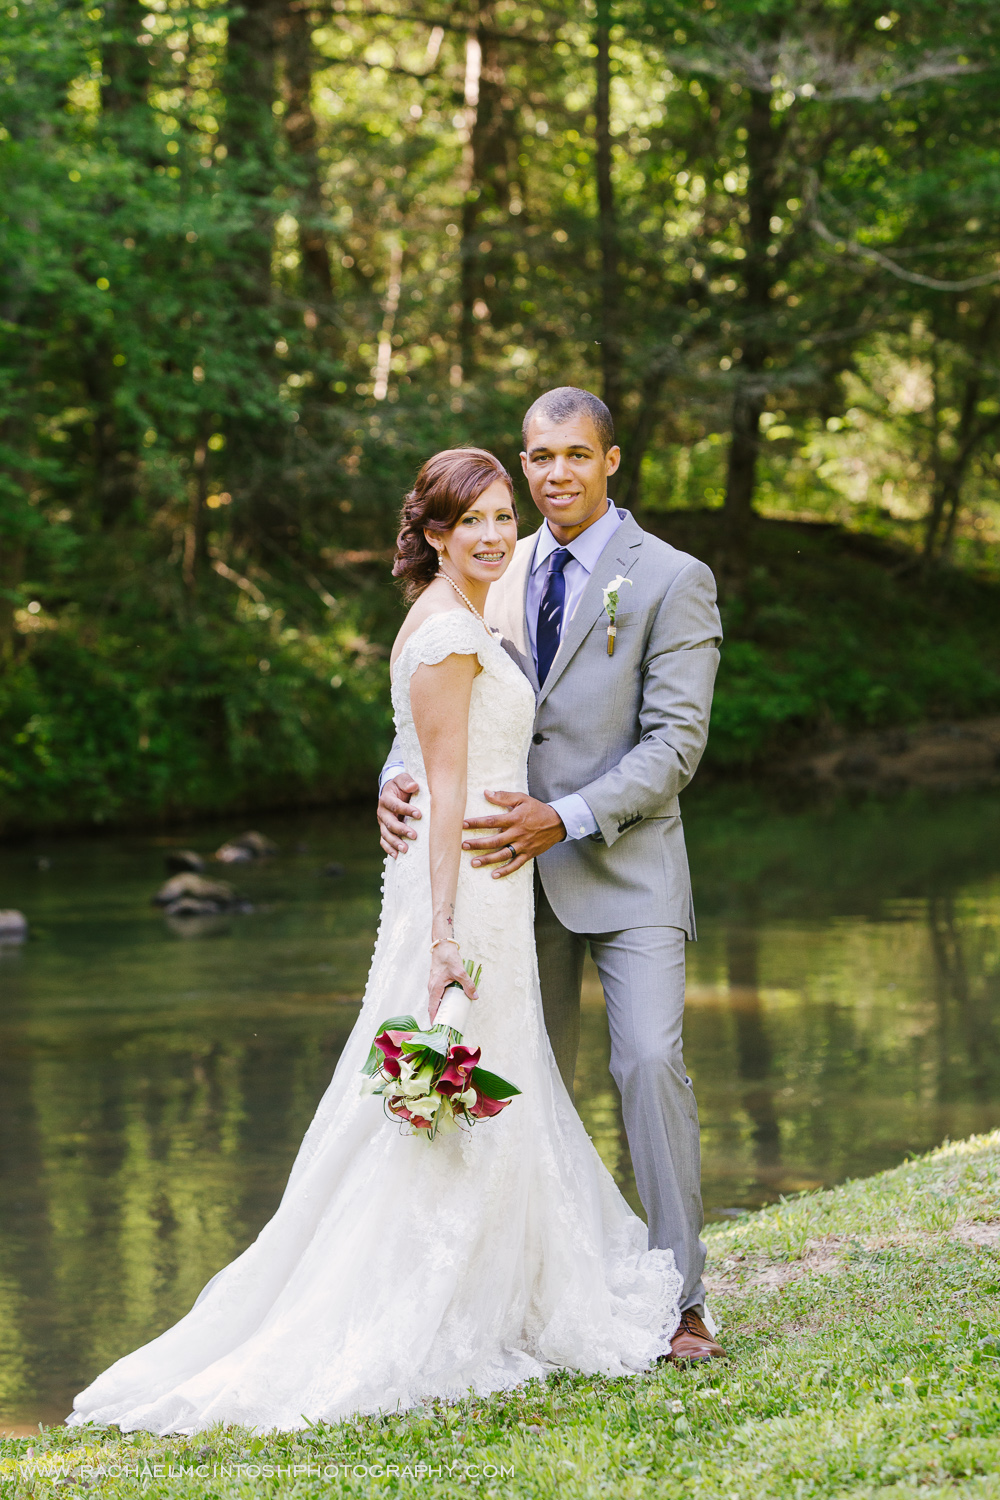 Rivers Ridge Lodge Wedding, Asheville North Carolina-79.jpg